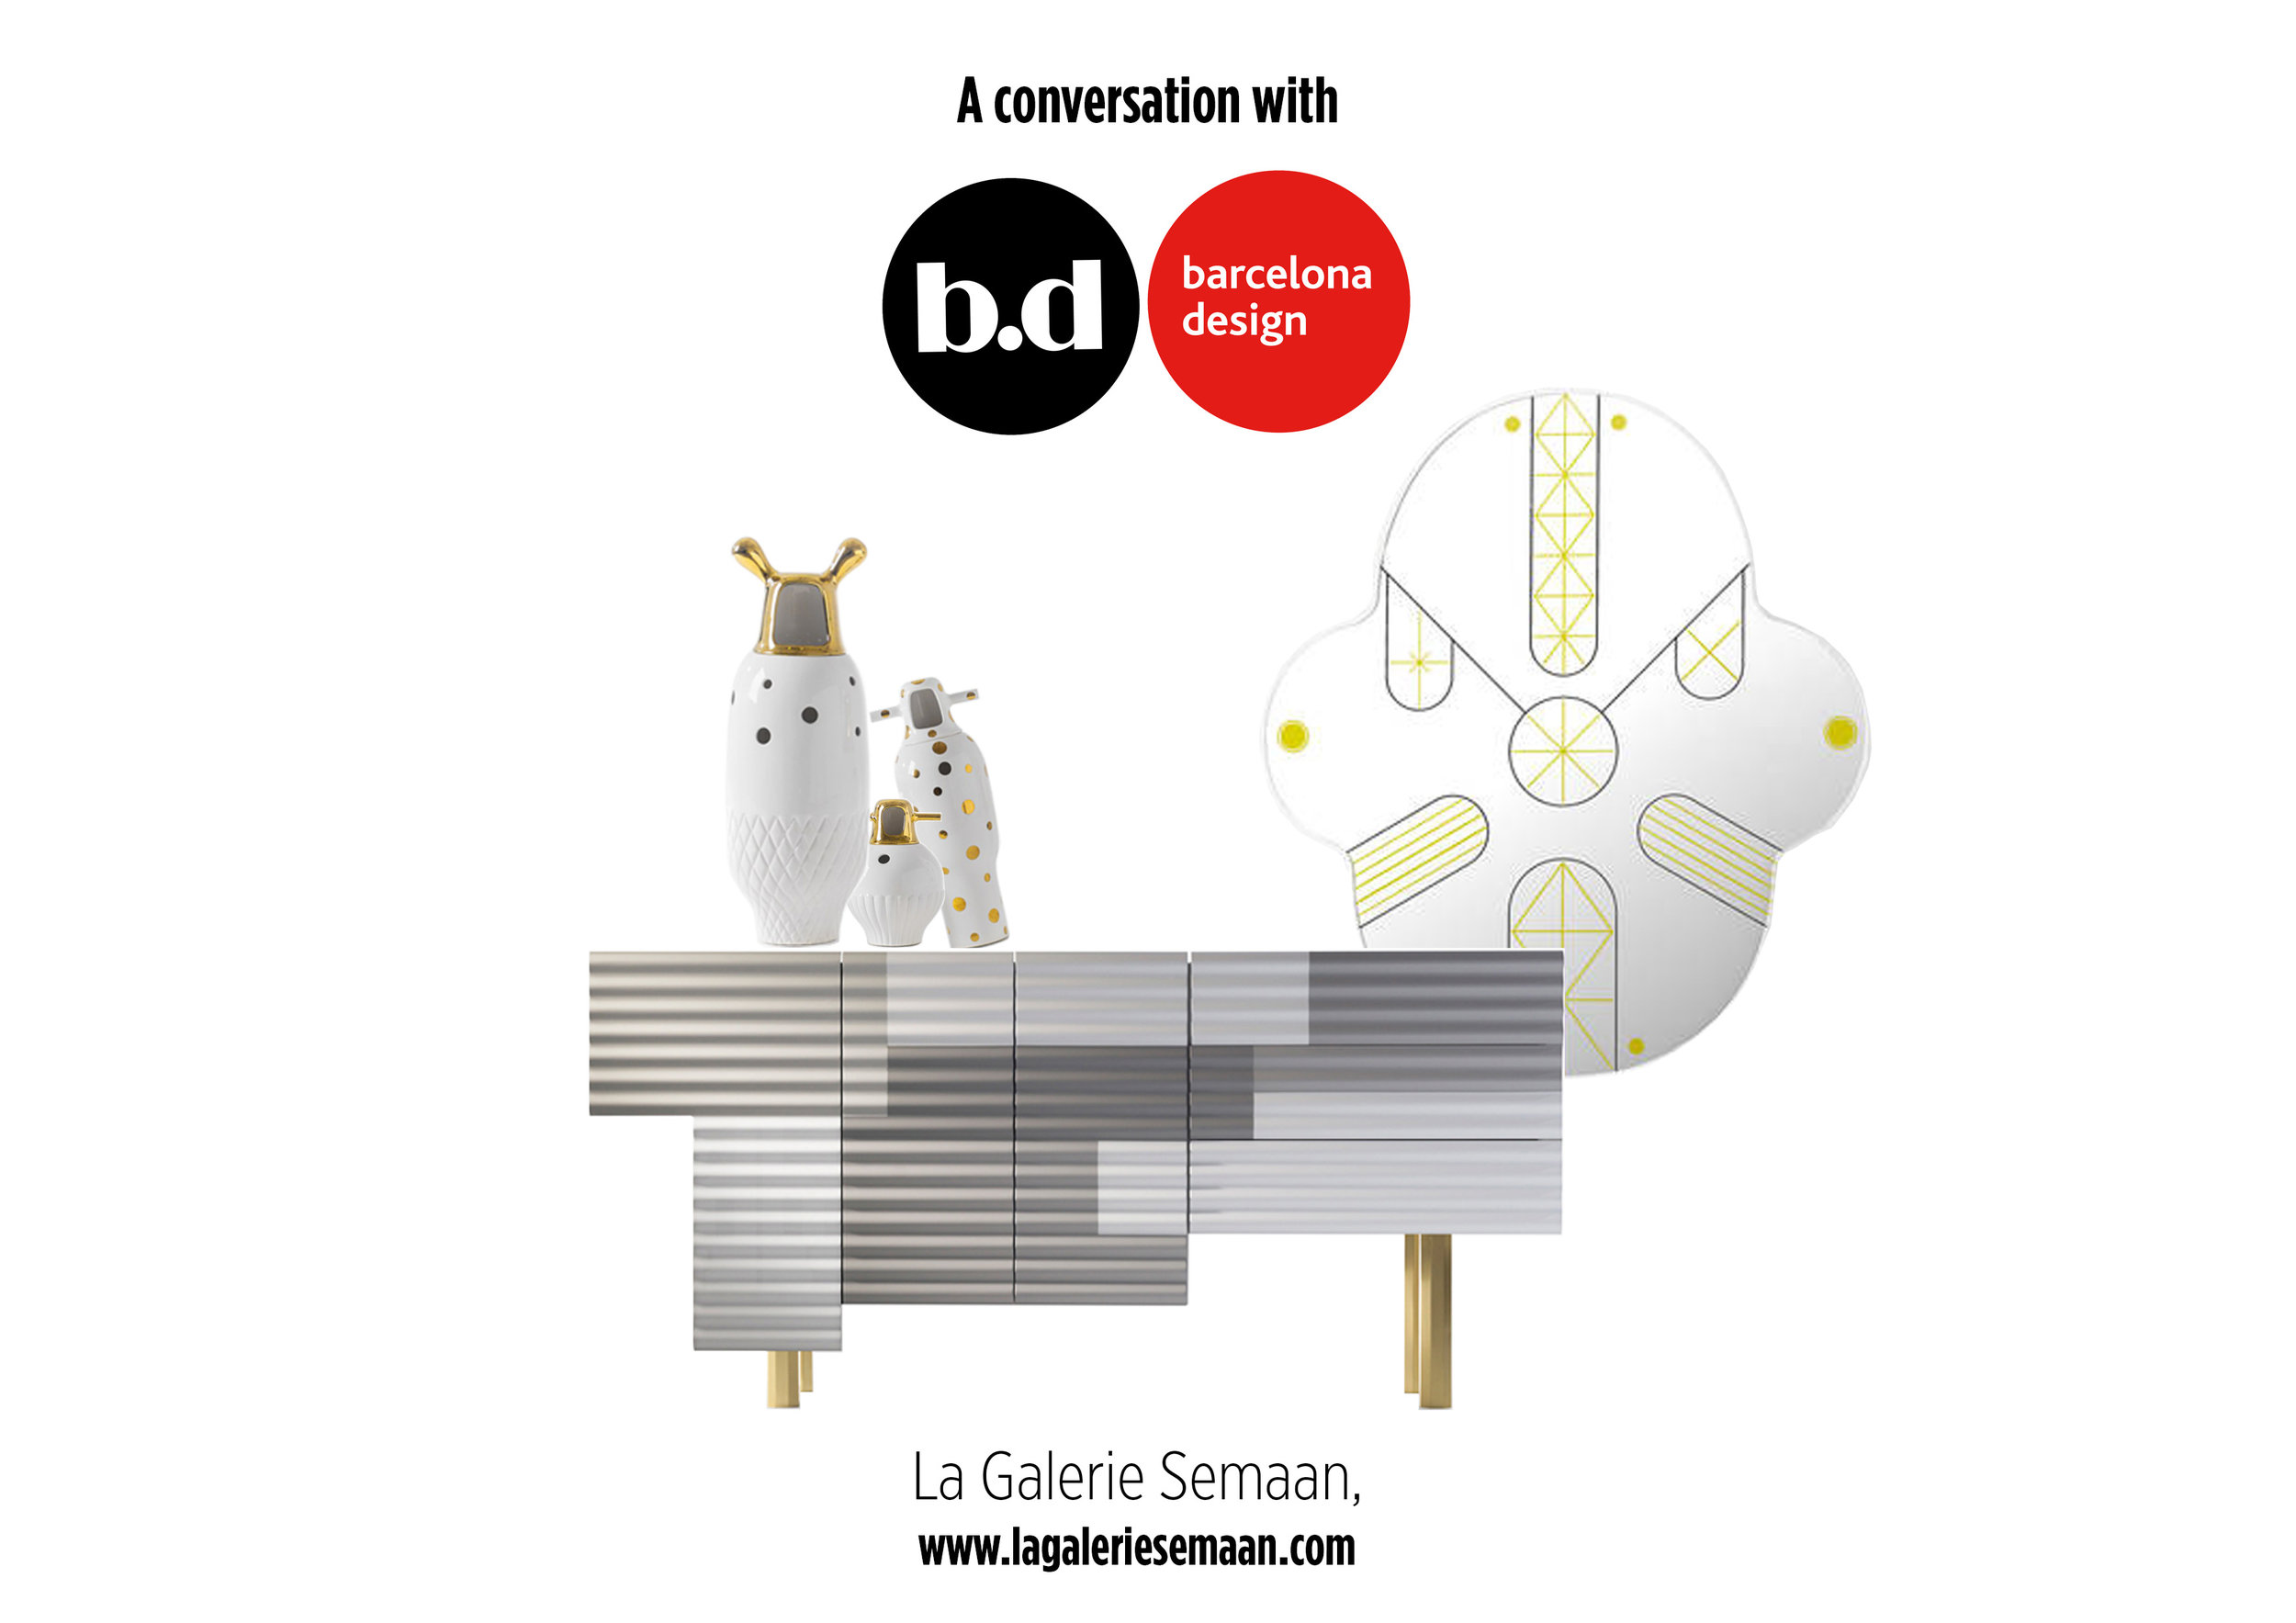 Open Day organised with BD Barcelona to discover their products and the different ways to place them in projects - 2017